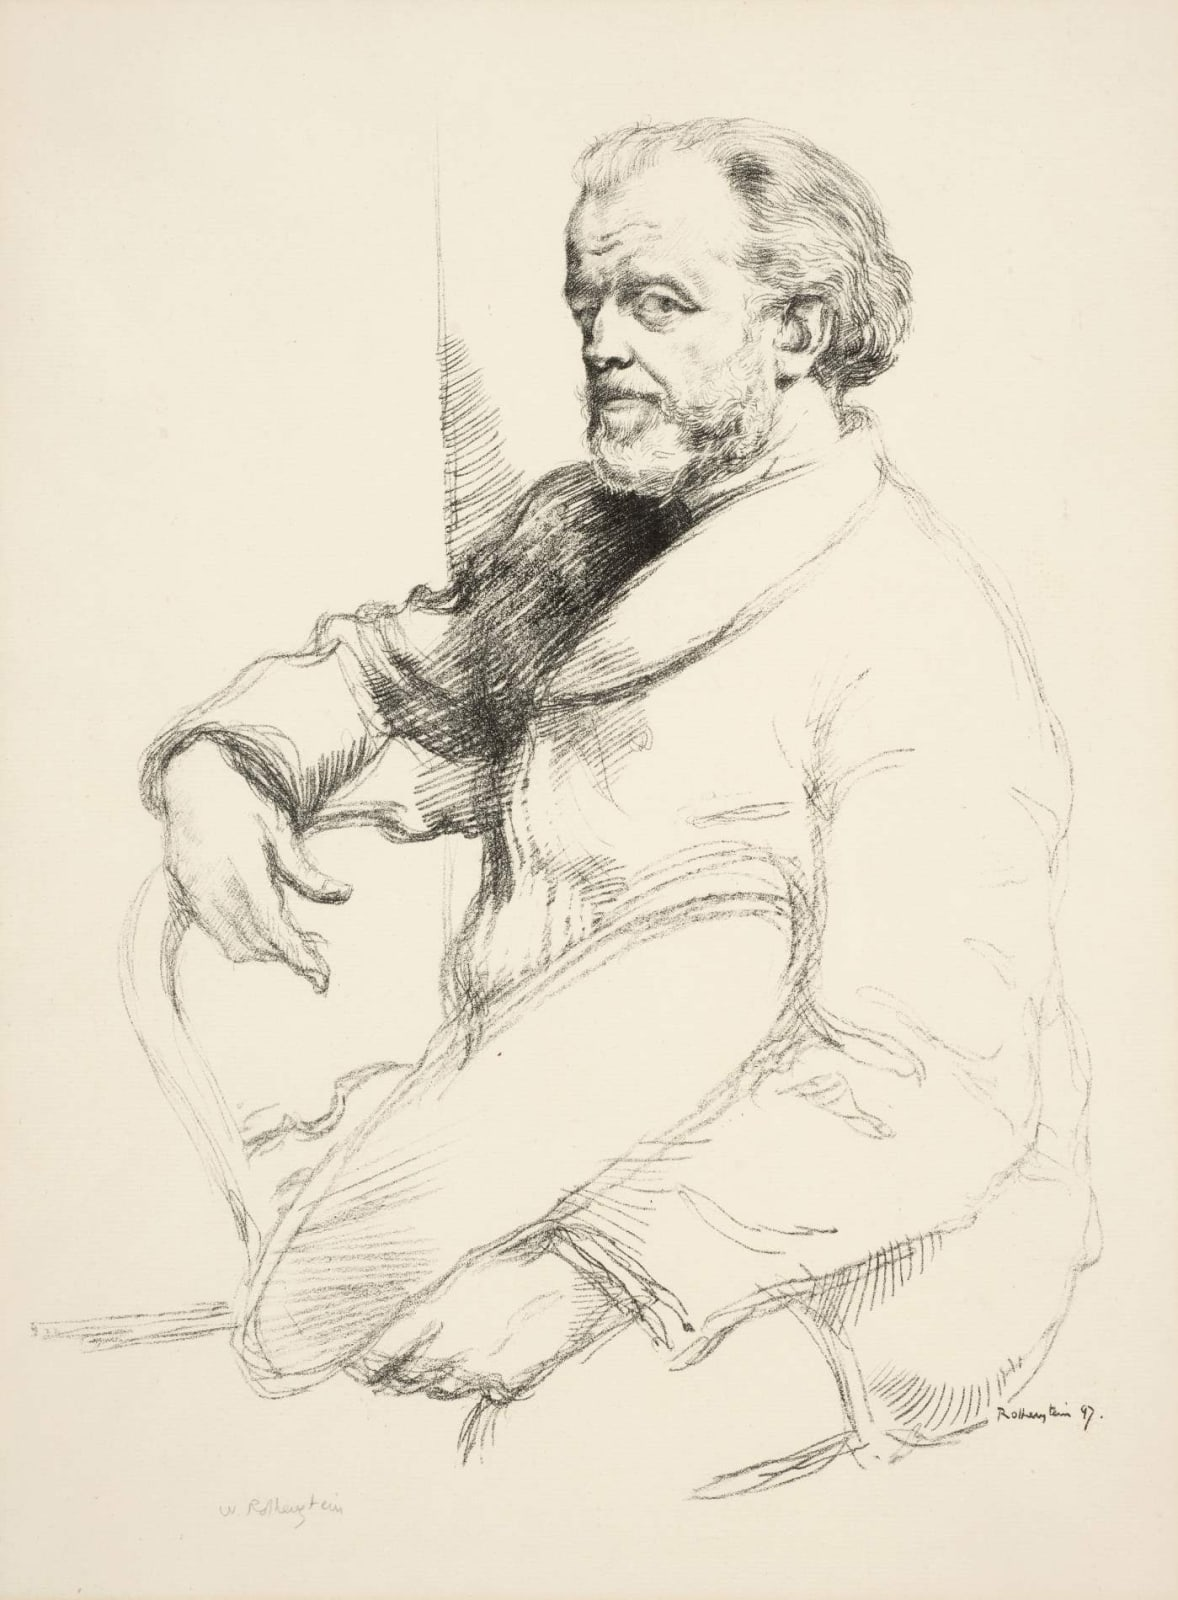 William Rothenstein (1872-1945) Portrait of Henri Fantin-Latour 1898 Lithograph published as part of The French Set 53 x 39 cm Bradford Museums and Galleries To see and discover more about this artist click here